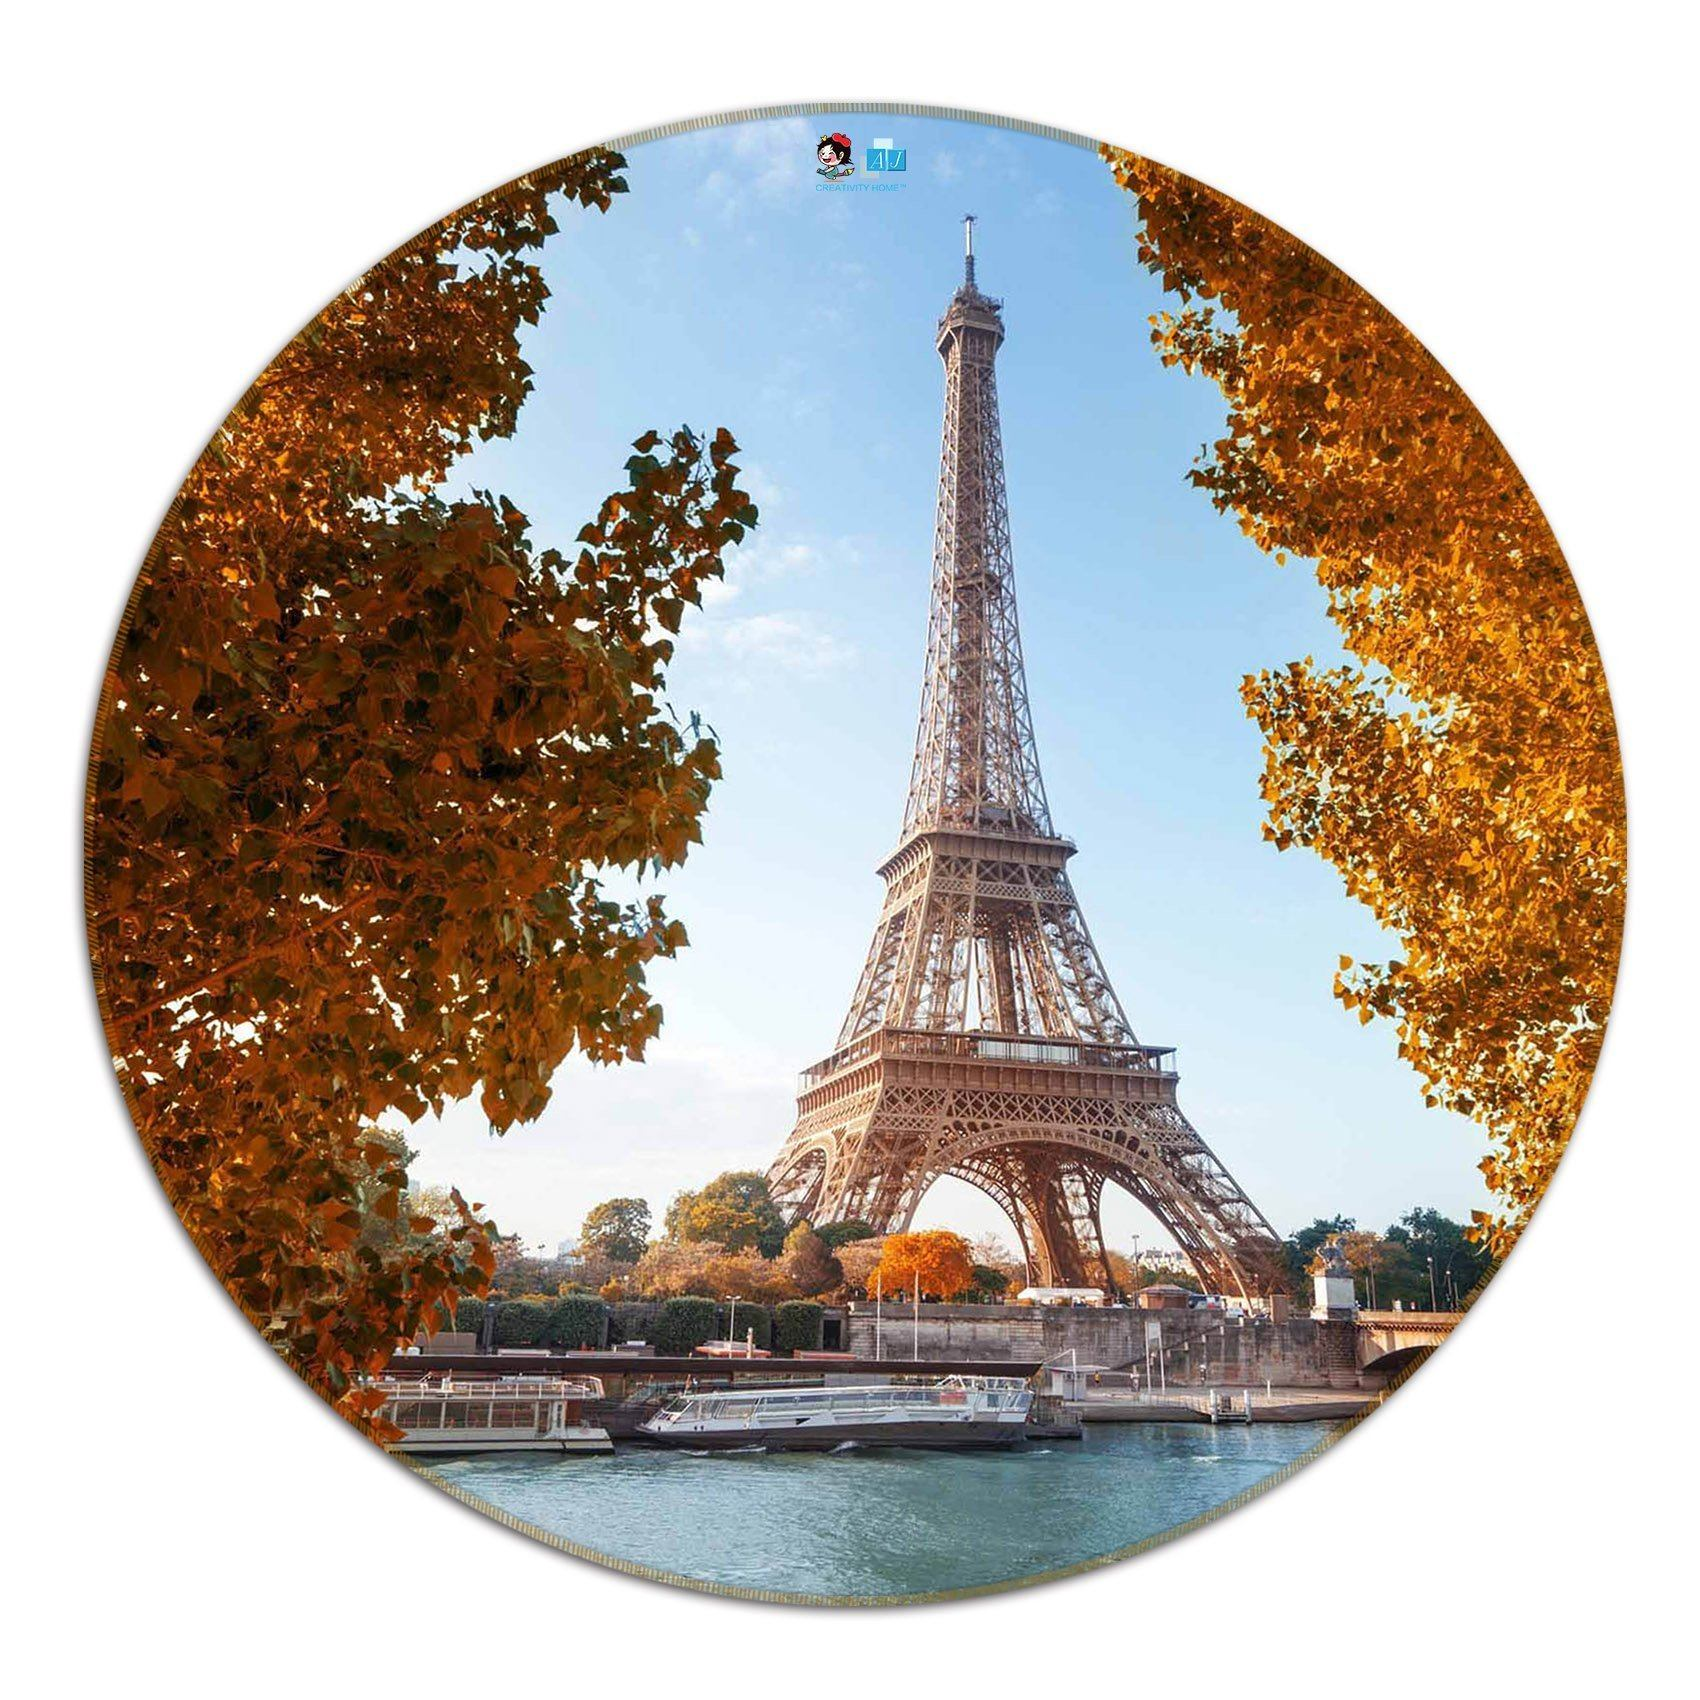 3D Eiffel Tower 78 Round Non Slip Rug Mat Mat AJ Creativity Home